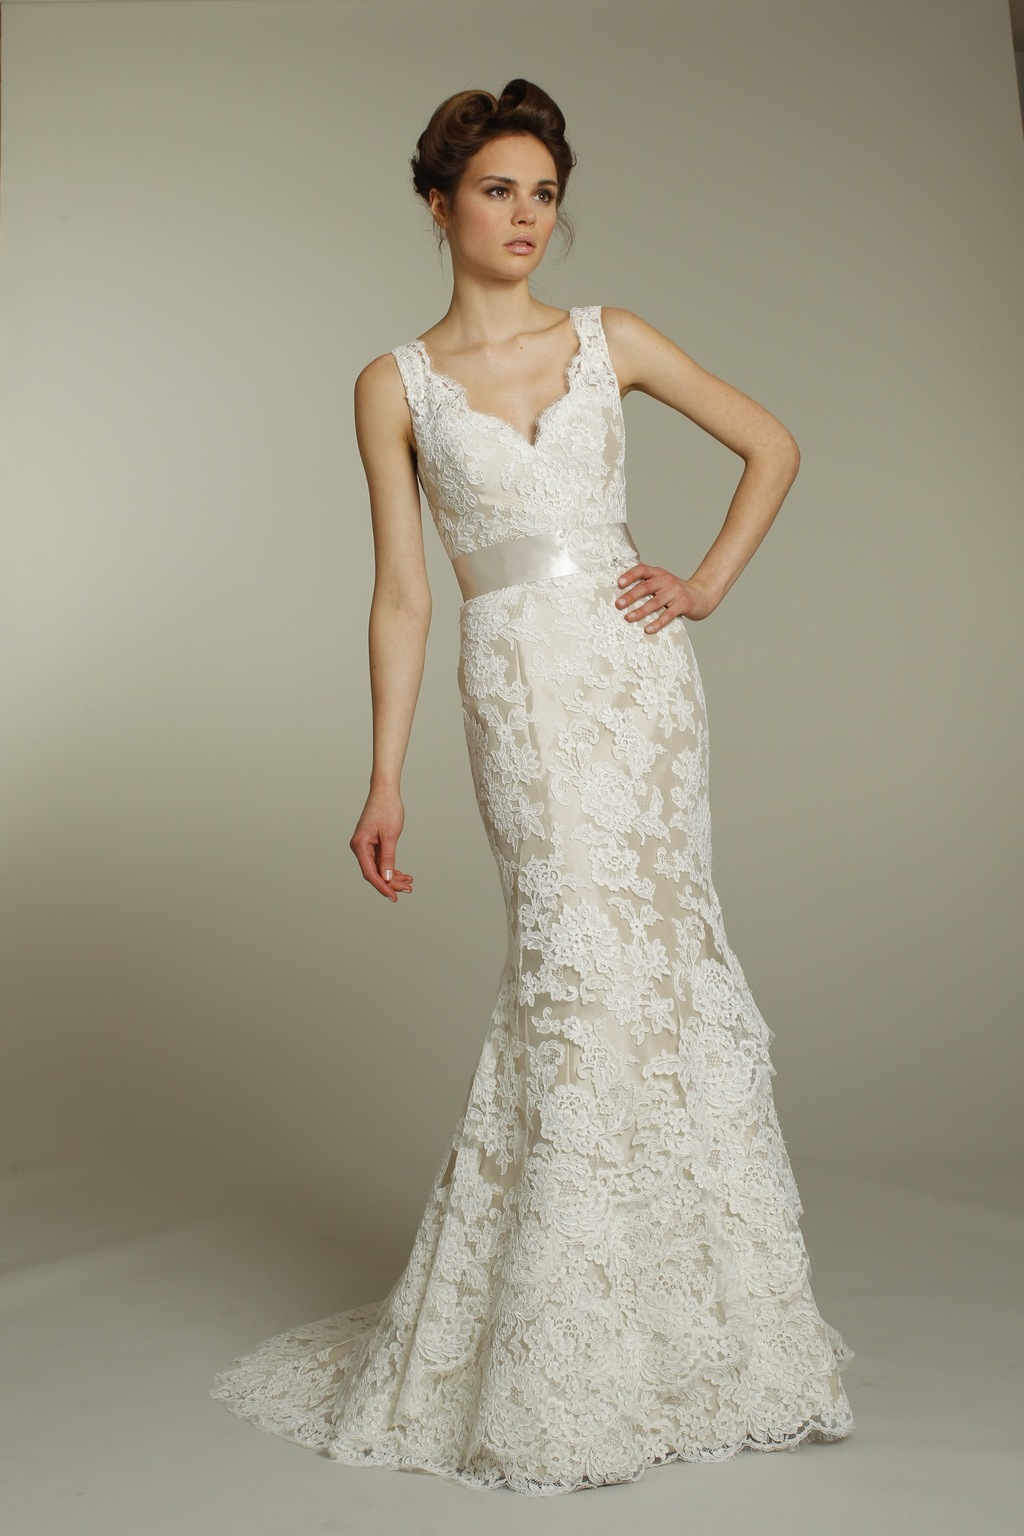 9161-alvina-valenta-wedding-dress-2011-bridal-gowns-ivory-champagne-lace-v-neck-ribbon-sash-front.full